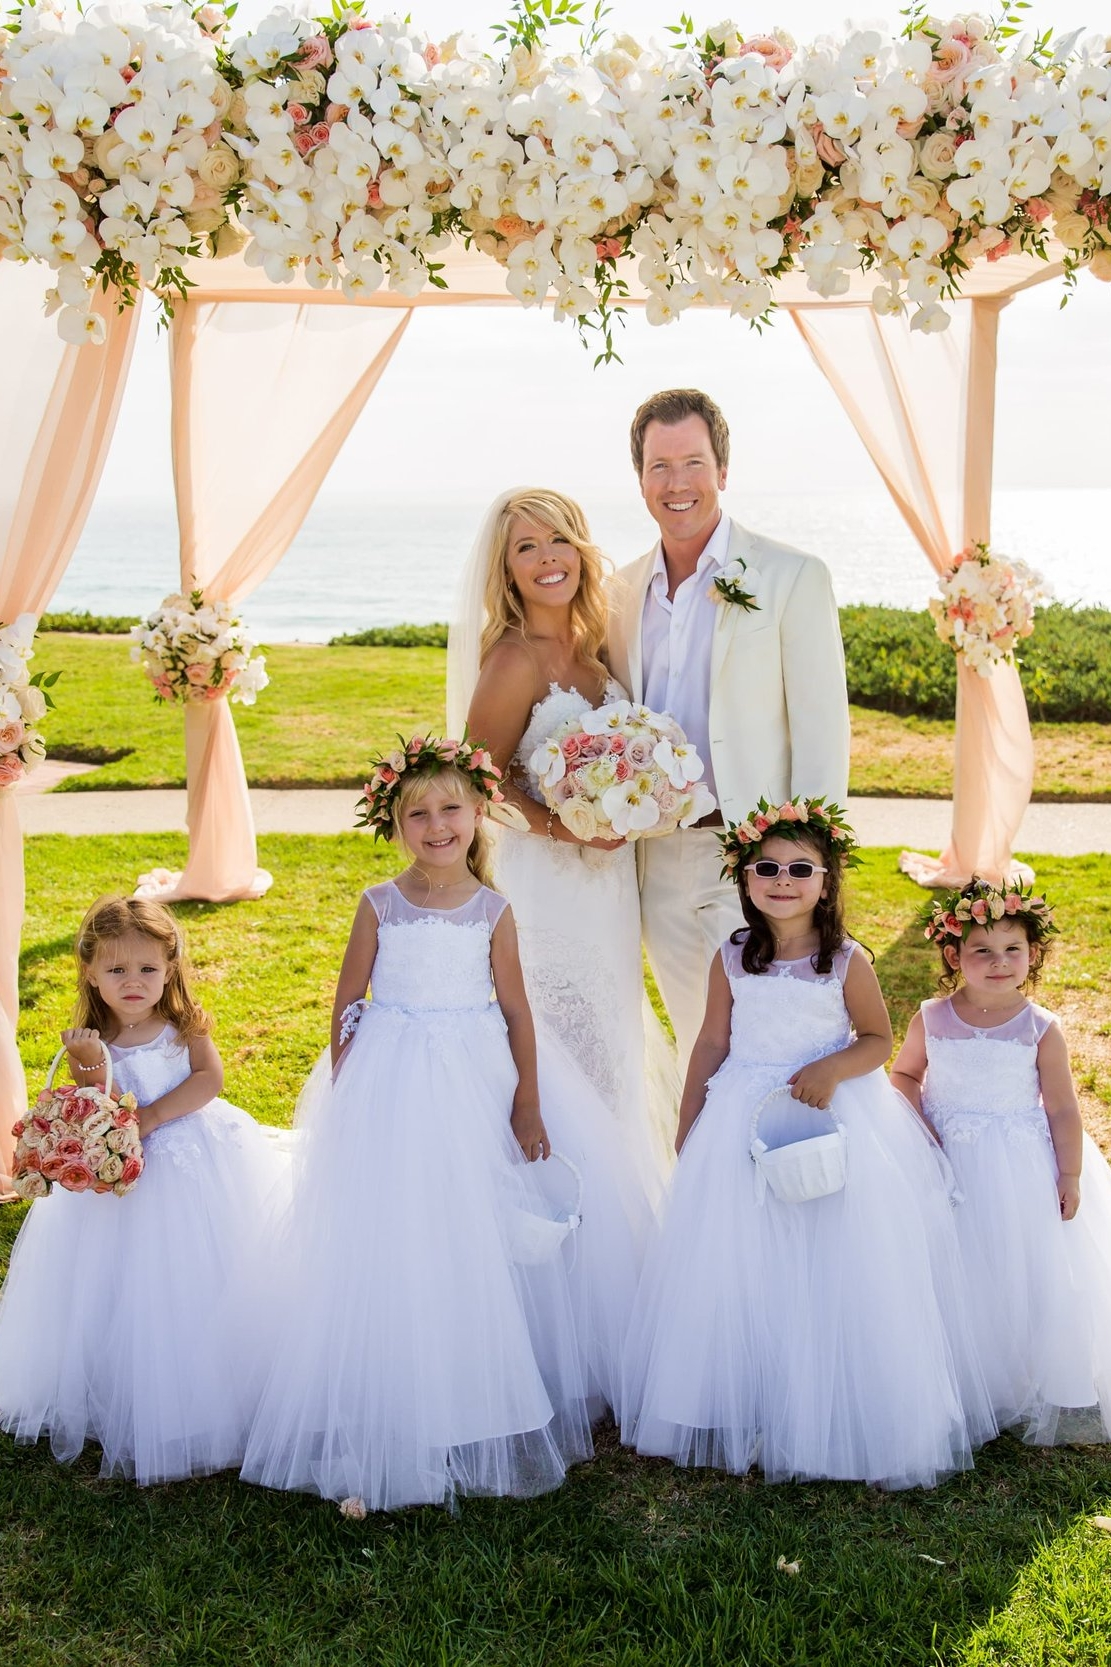 Four Amalee flower girls in white tulle and lace